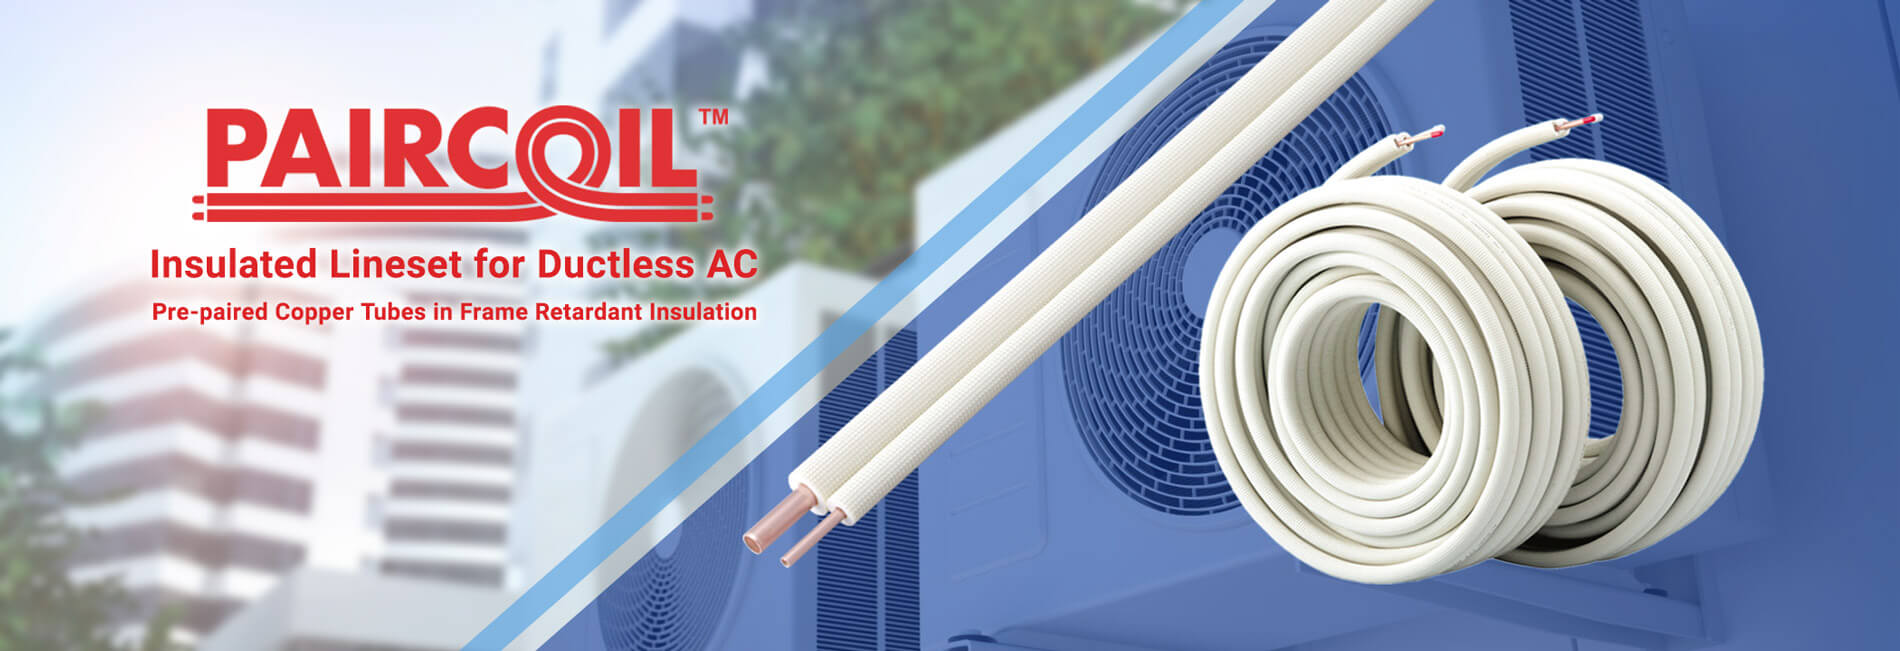 PAIRCOIL   Insulated Lineset for Ductless AC   Pre-paired Copper Tubes in Frame Retardant Insulation